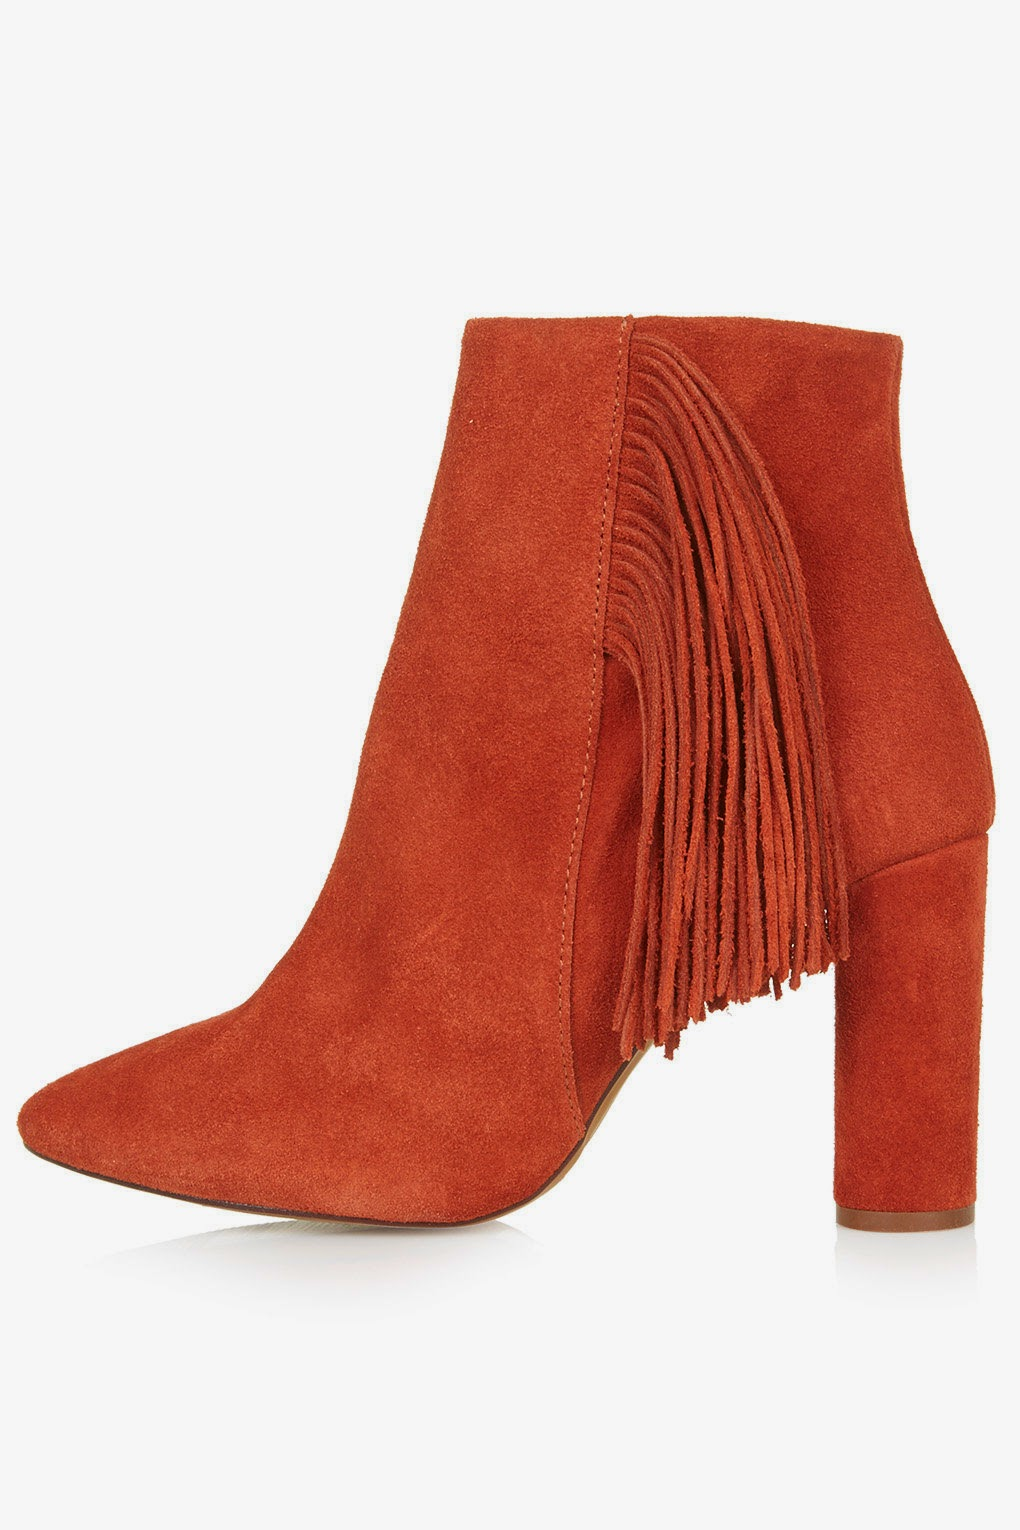 topshop tassel ankle boots, topshop orange ankle boots, orange suede boot,